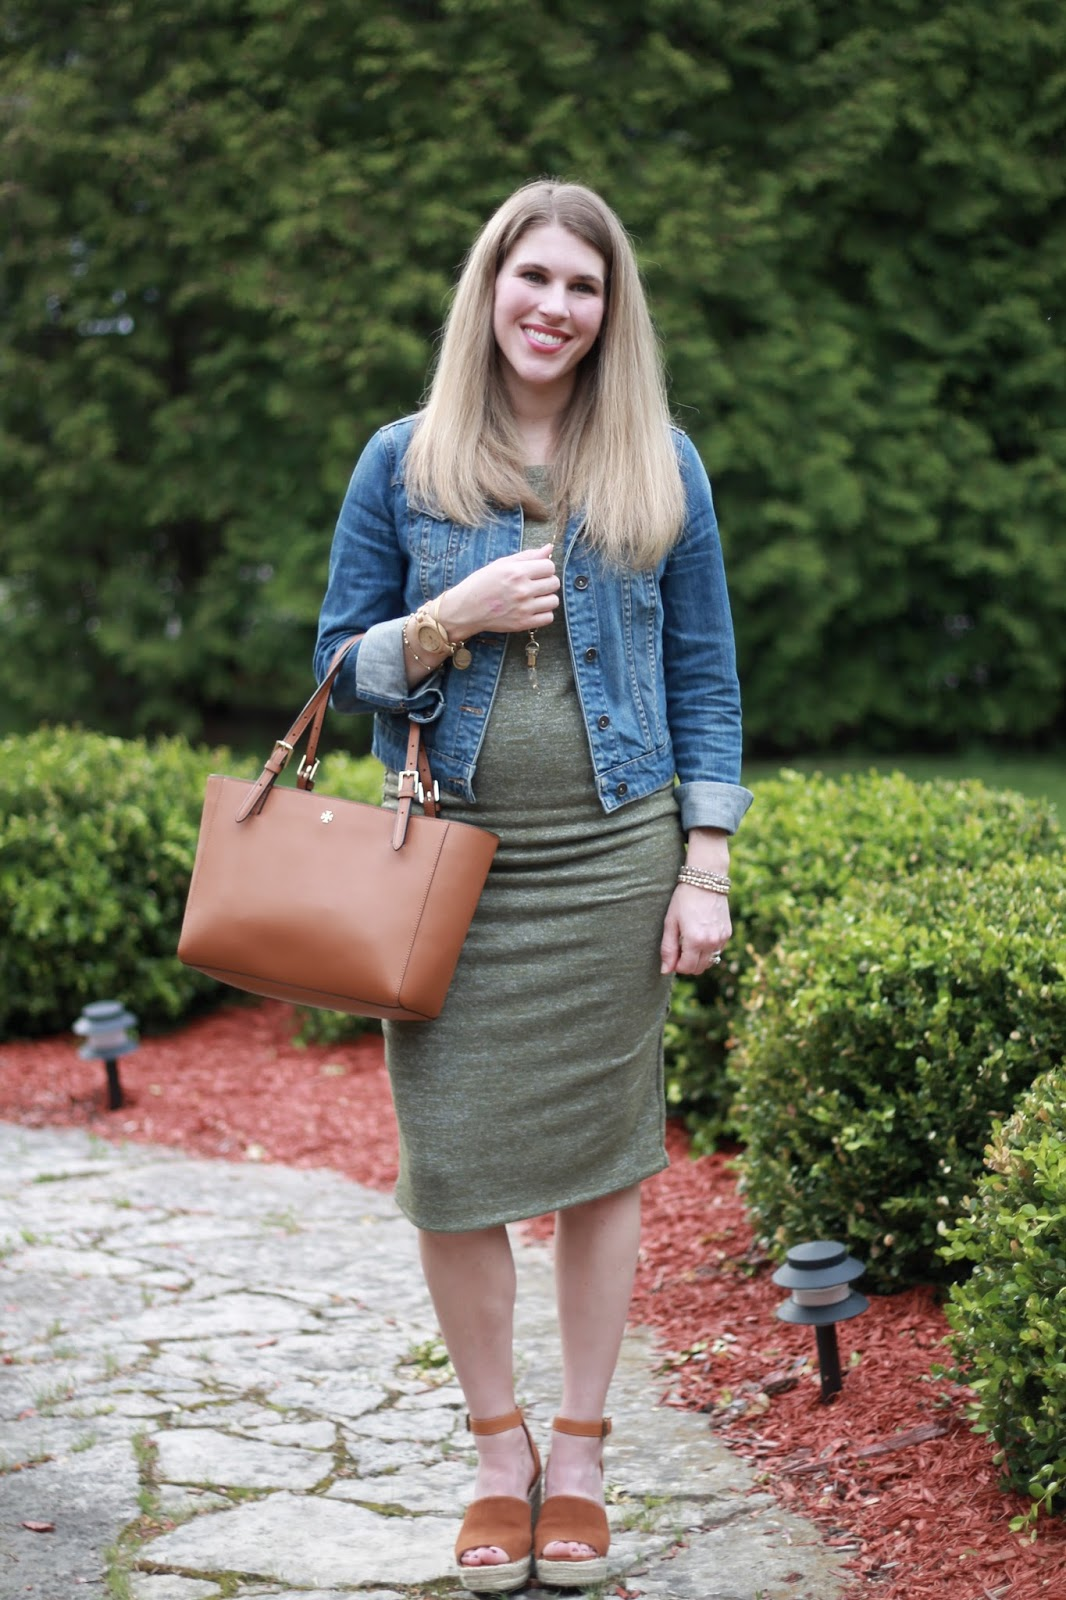 ruched olive maternity dress, denim jacket, Steve Madden wedges, Tory Burch tote